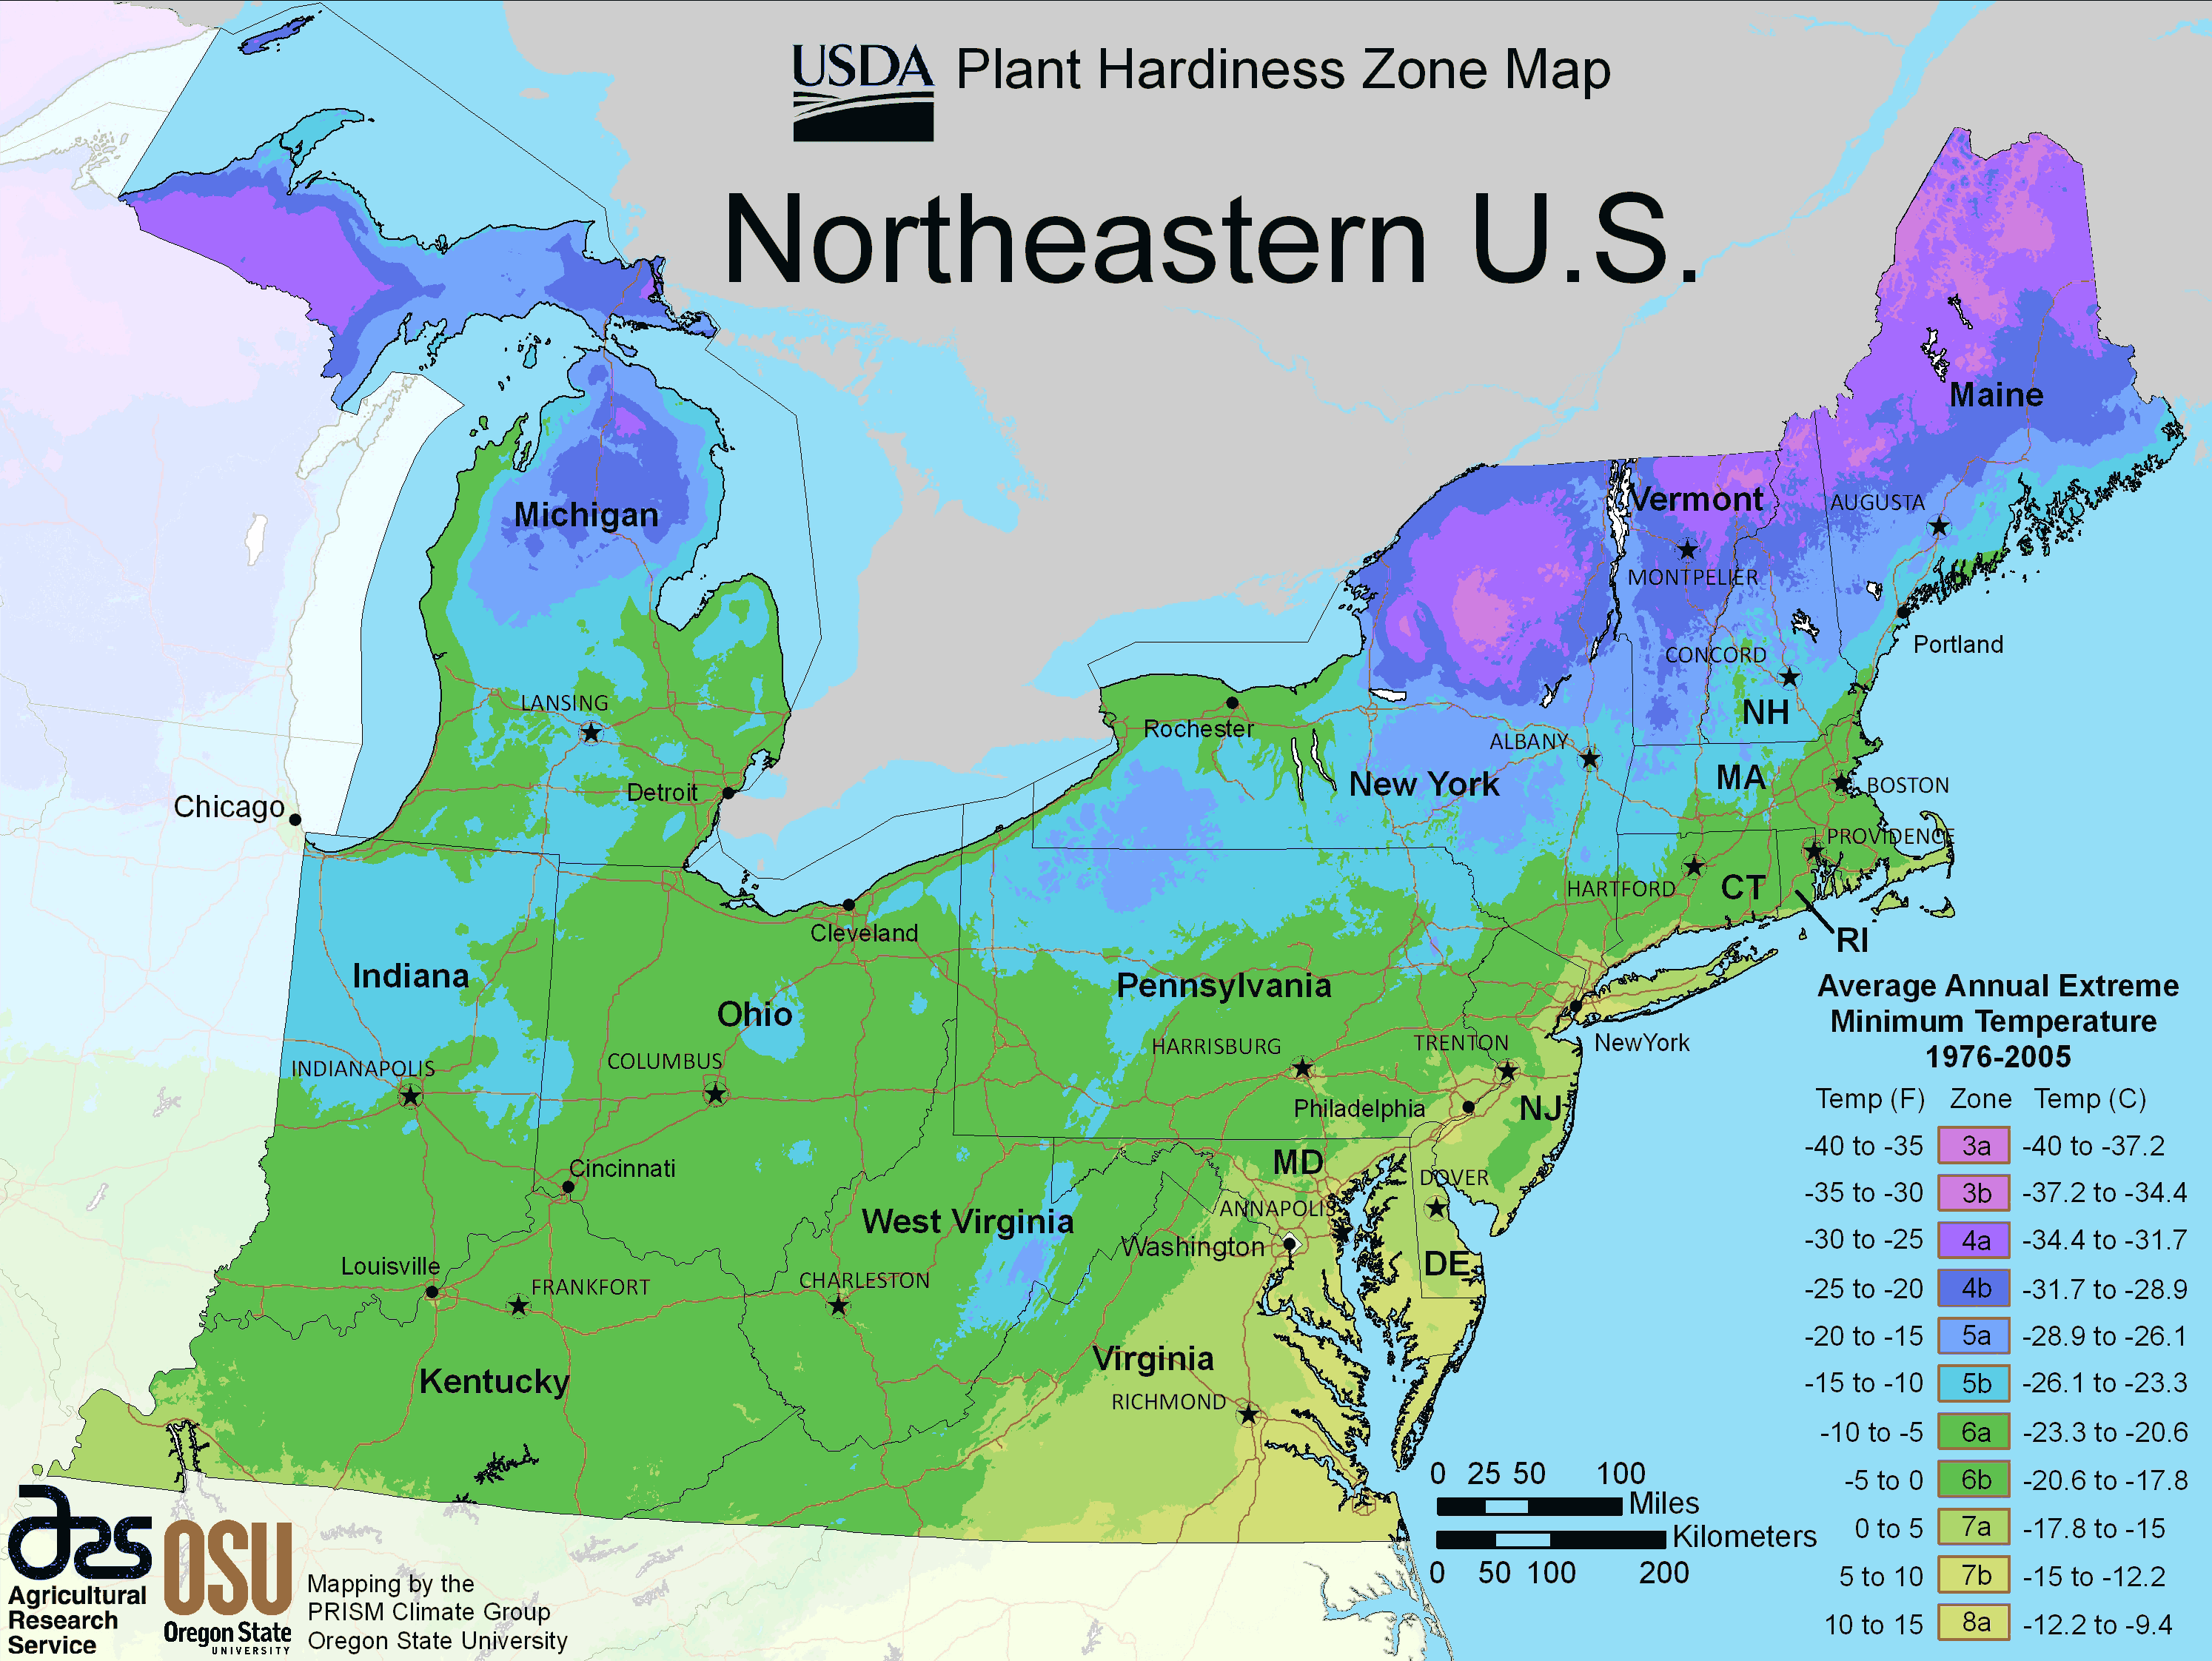 Click On The North East Us Plant Hardiness Zone Map